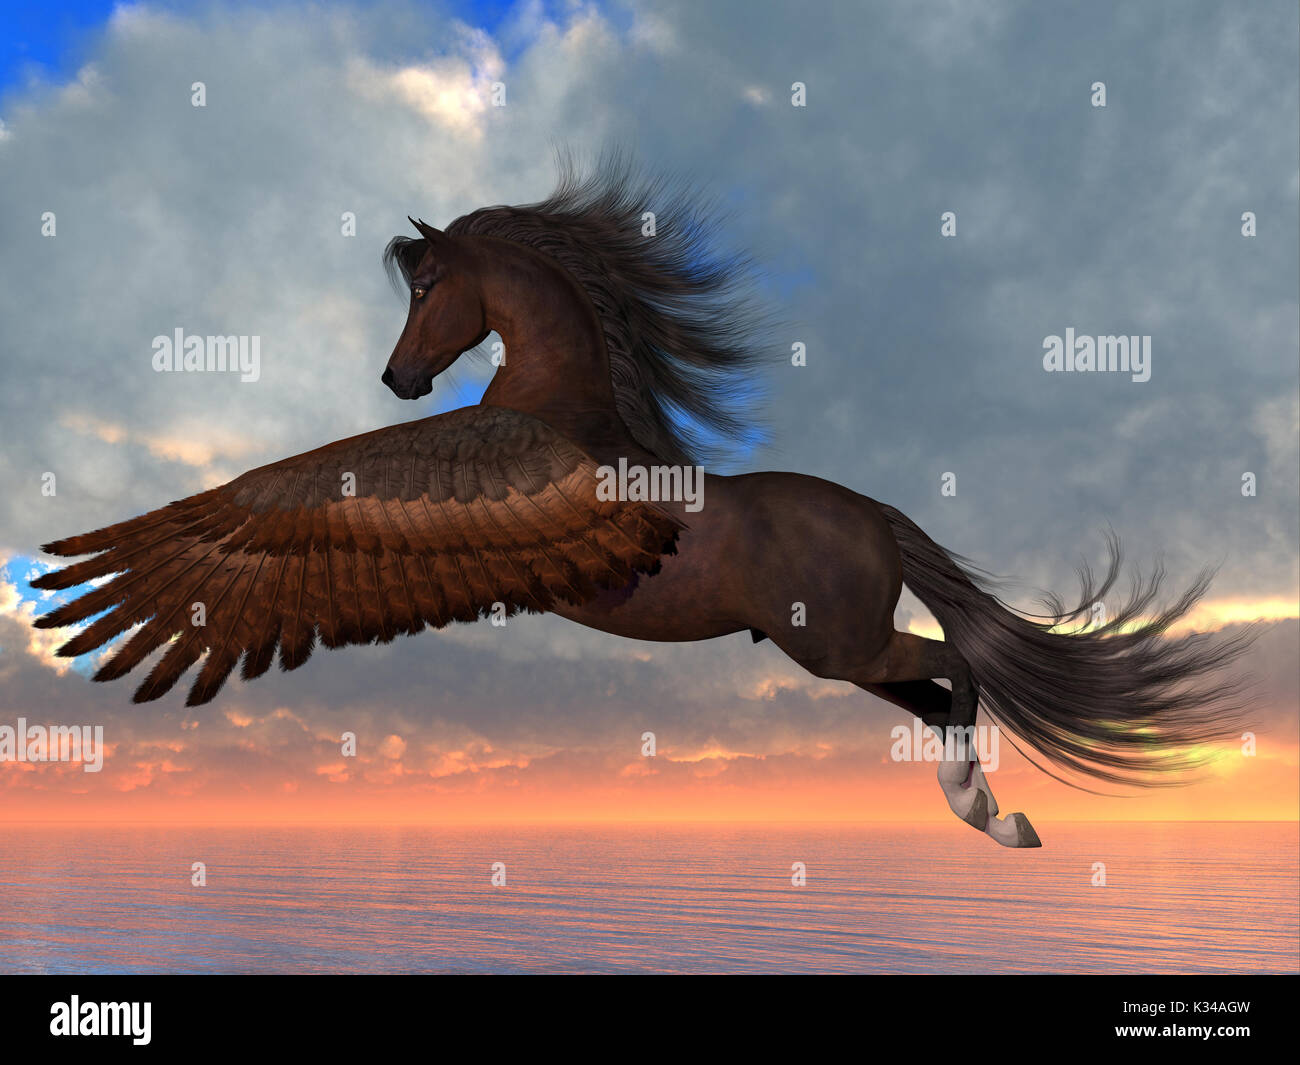 An Arabian Pegasus horse flies over the ocean with powerful wing beats on his way to his destination. - Stock Image